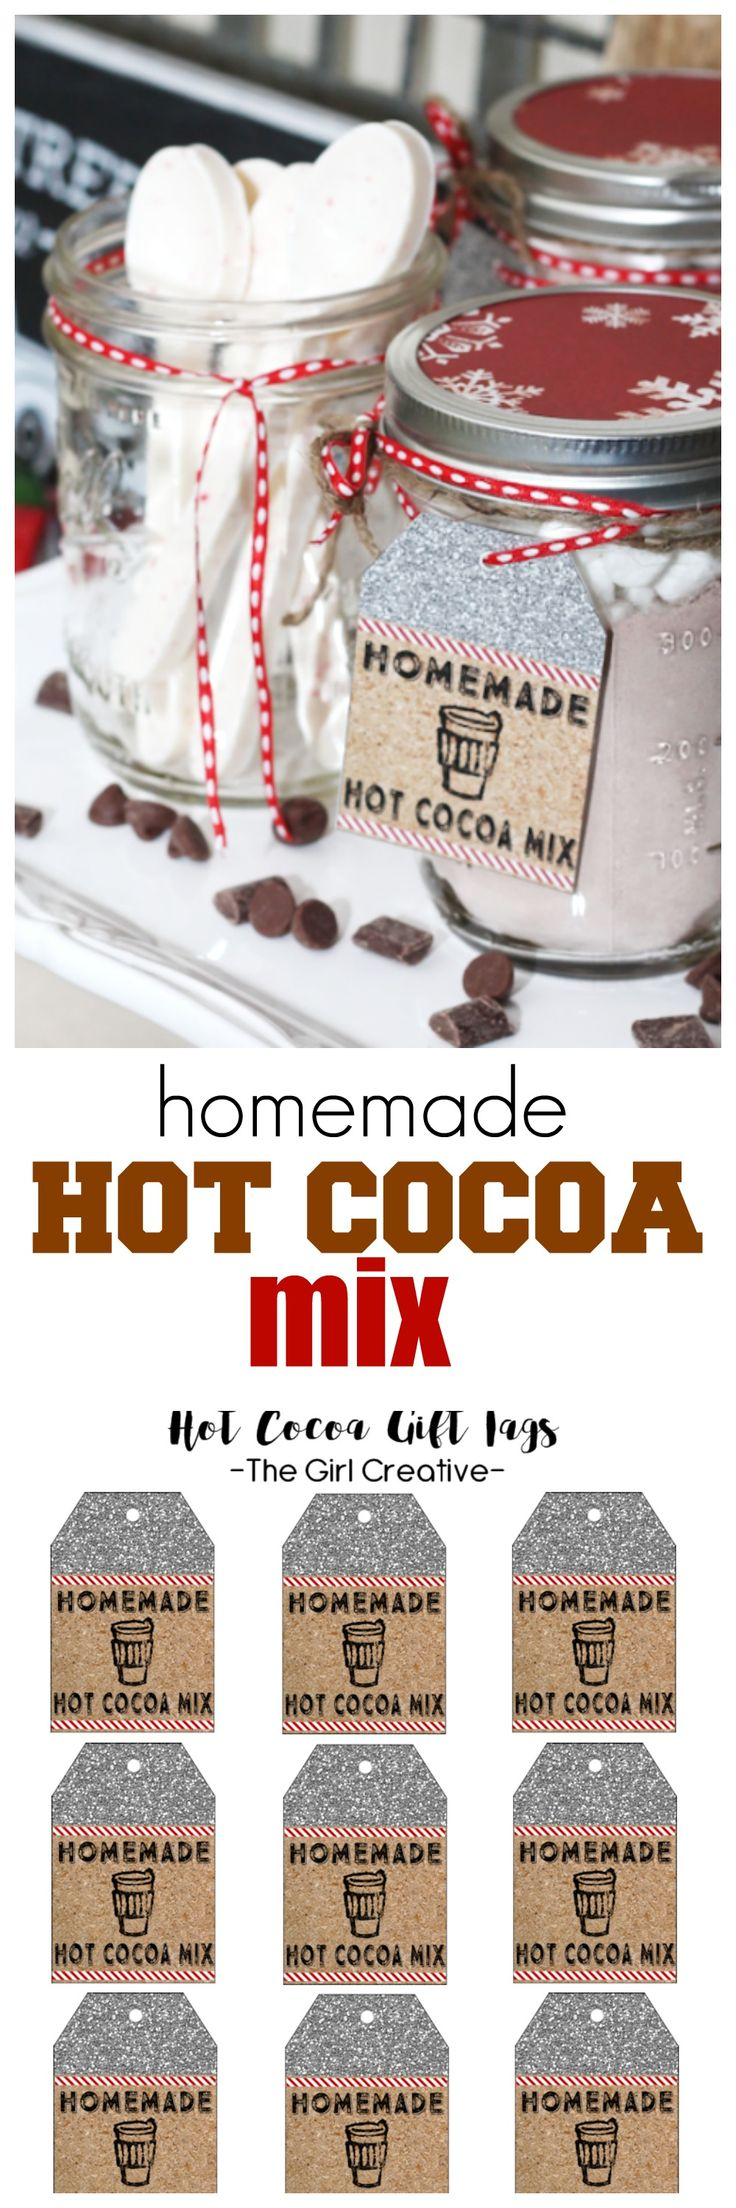 Homemade Hot Cocoa mix with candy cane spoons!